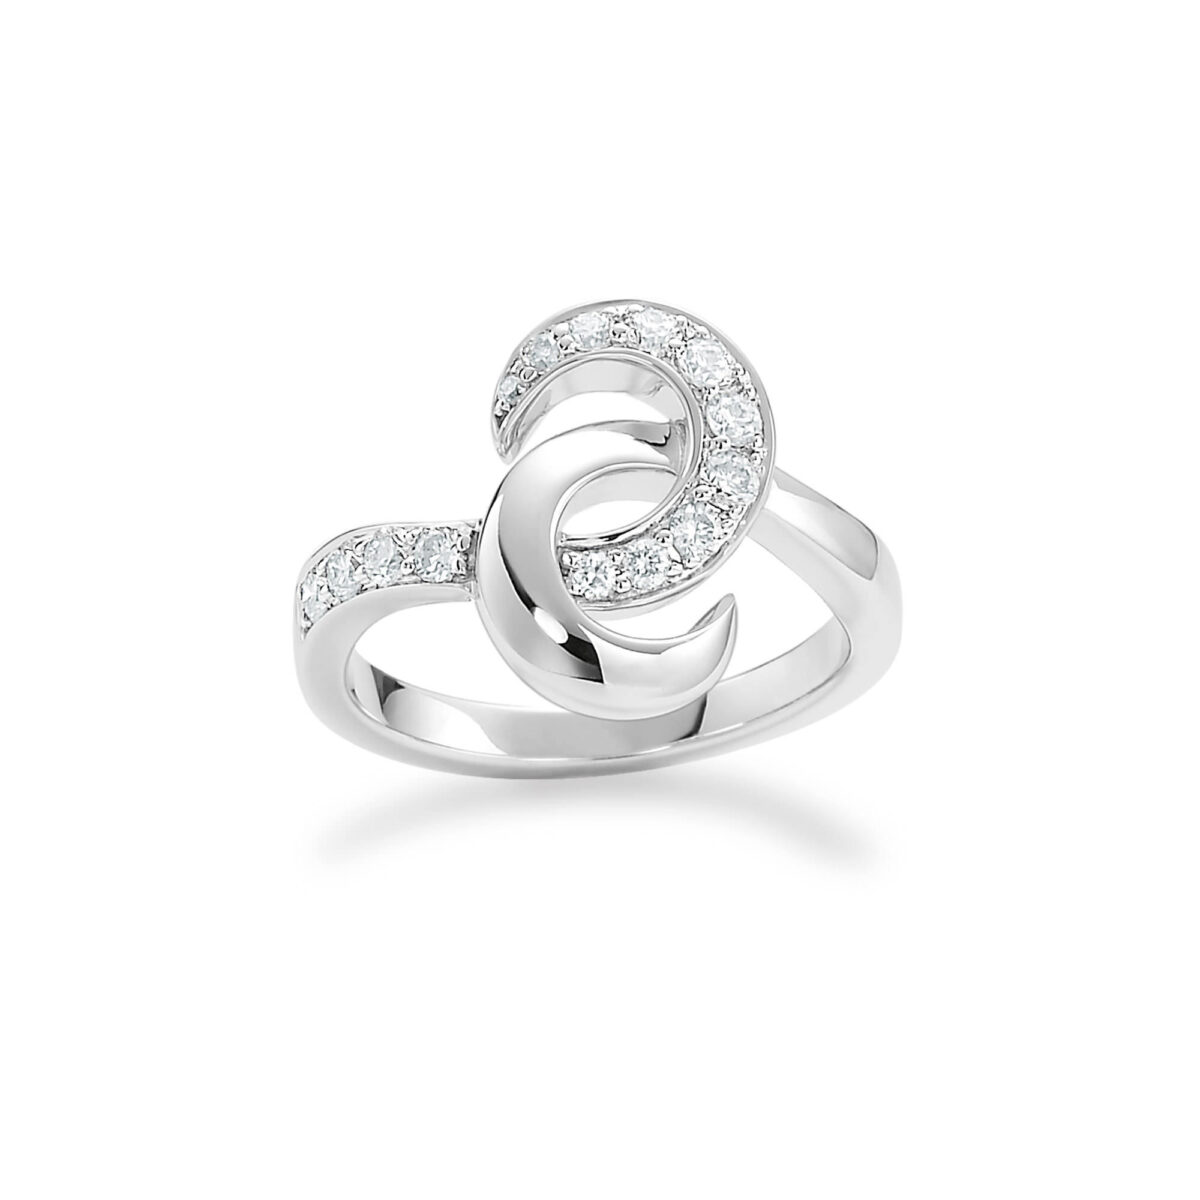 Hooked on You White Gold Diamond Ring